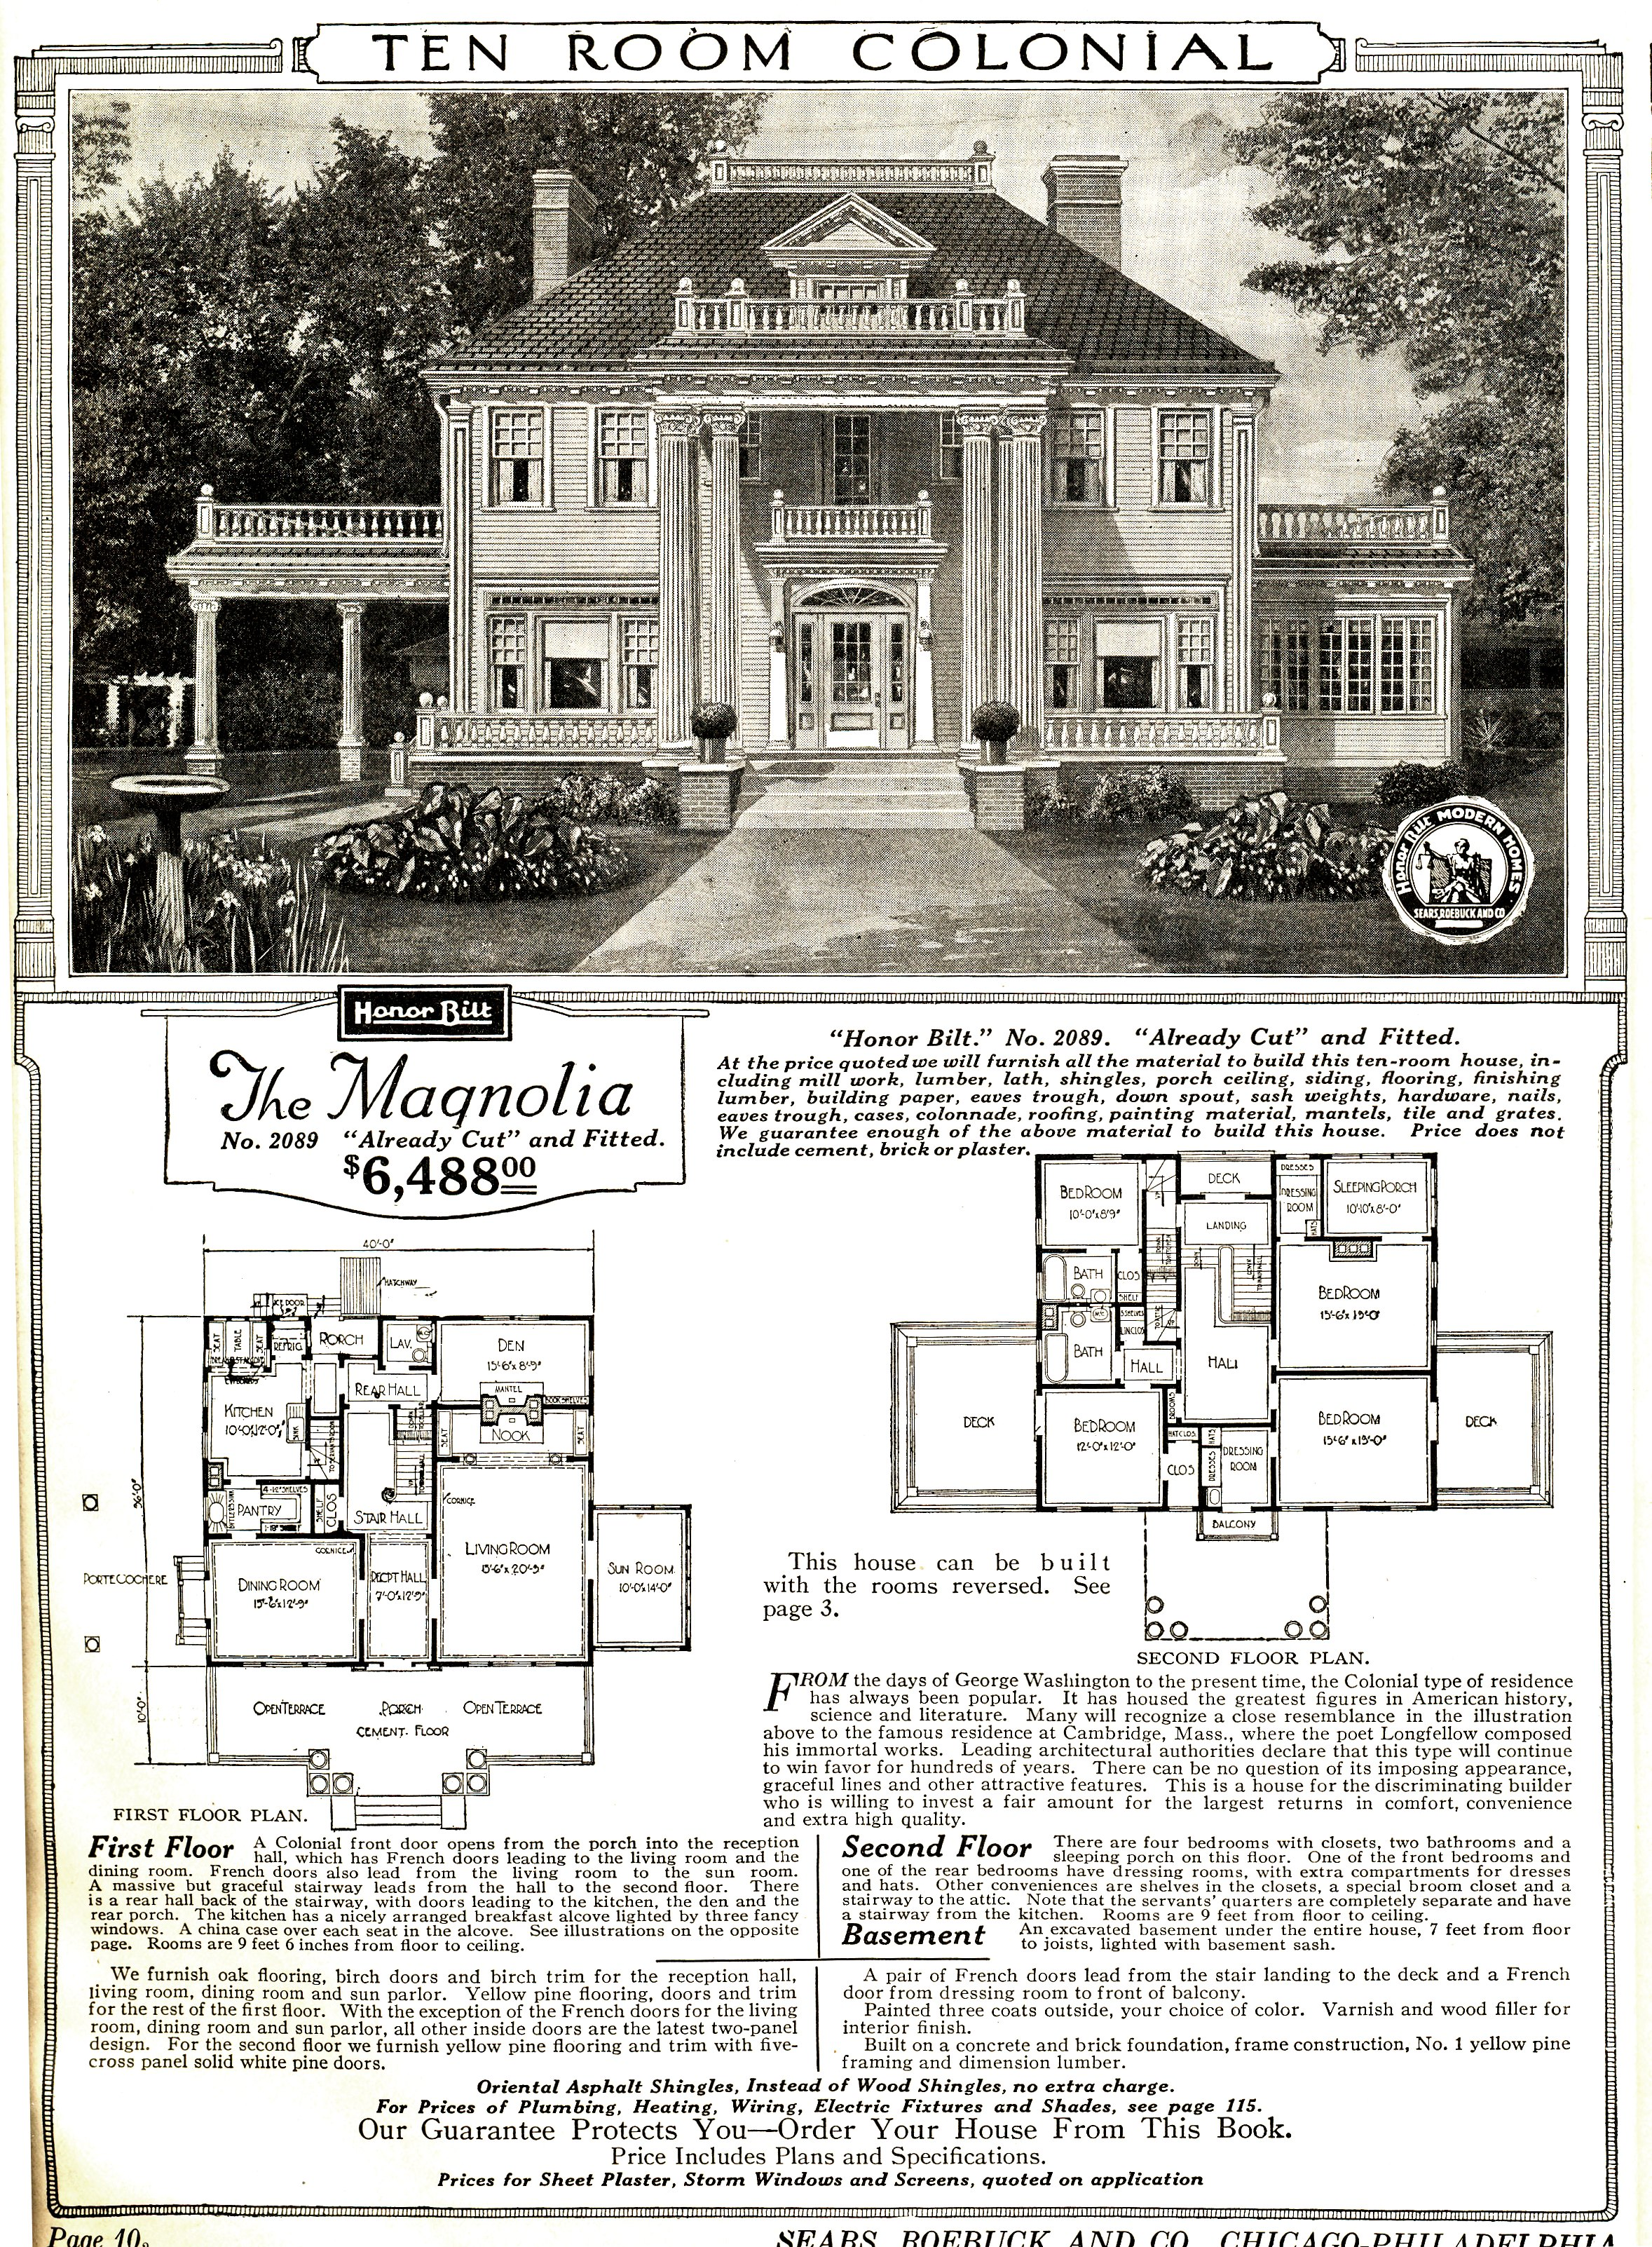 sears catalog home wikipedia catalog image and floorplan of sears magnolia model